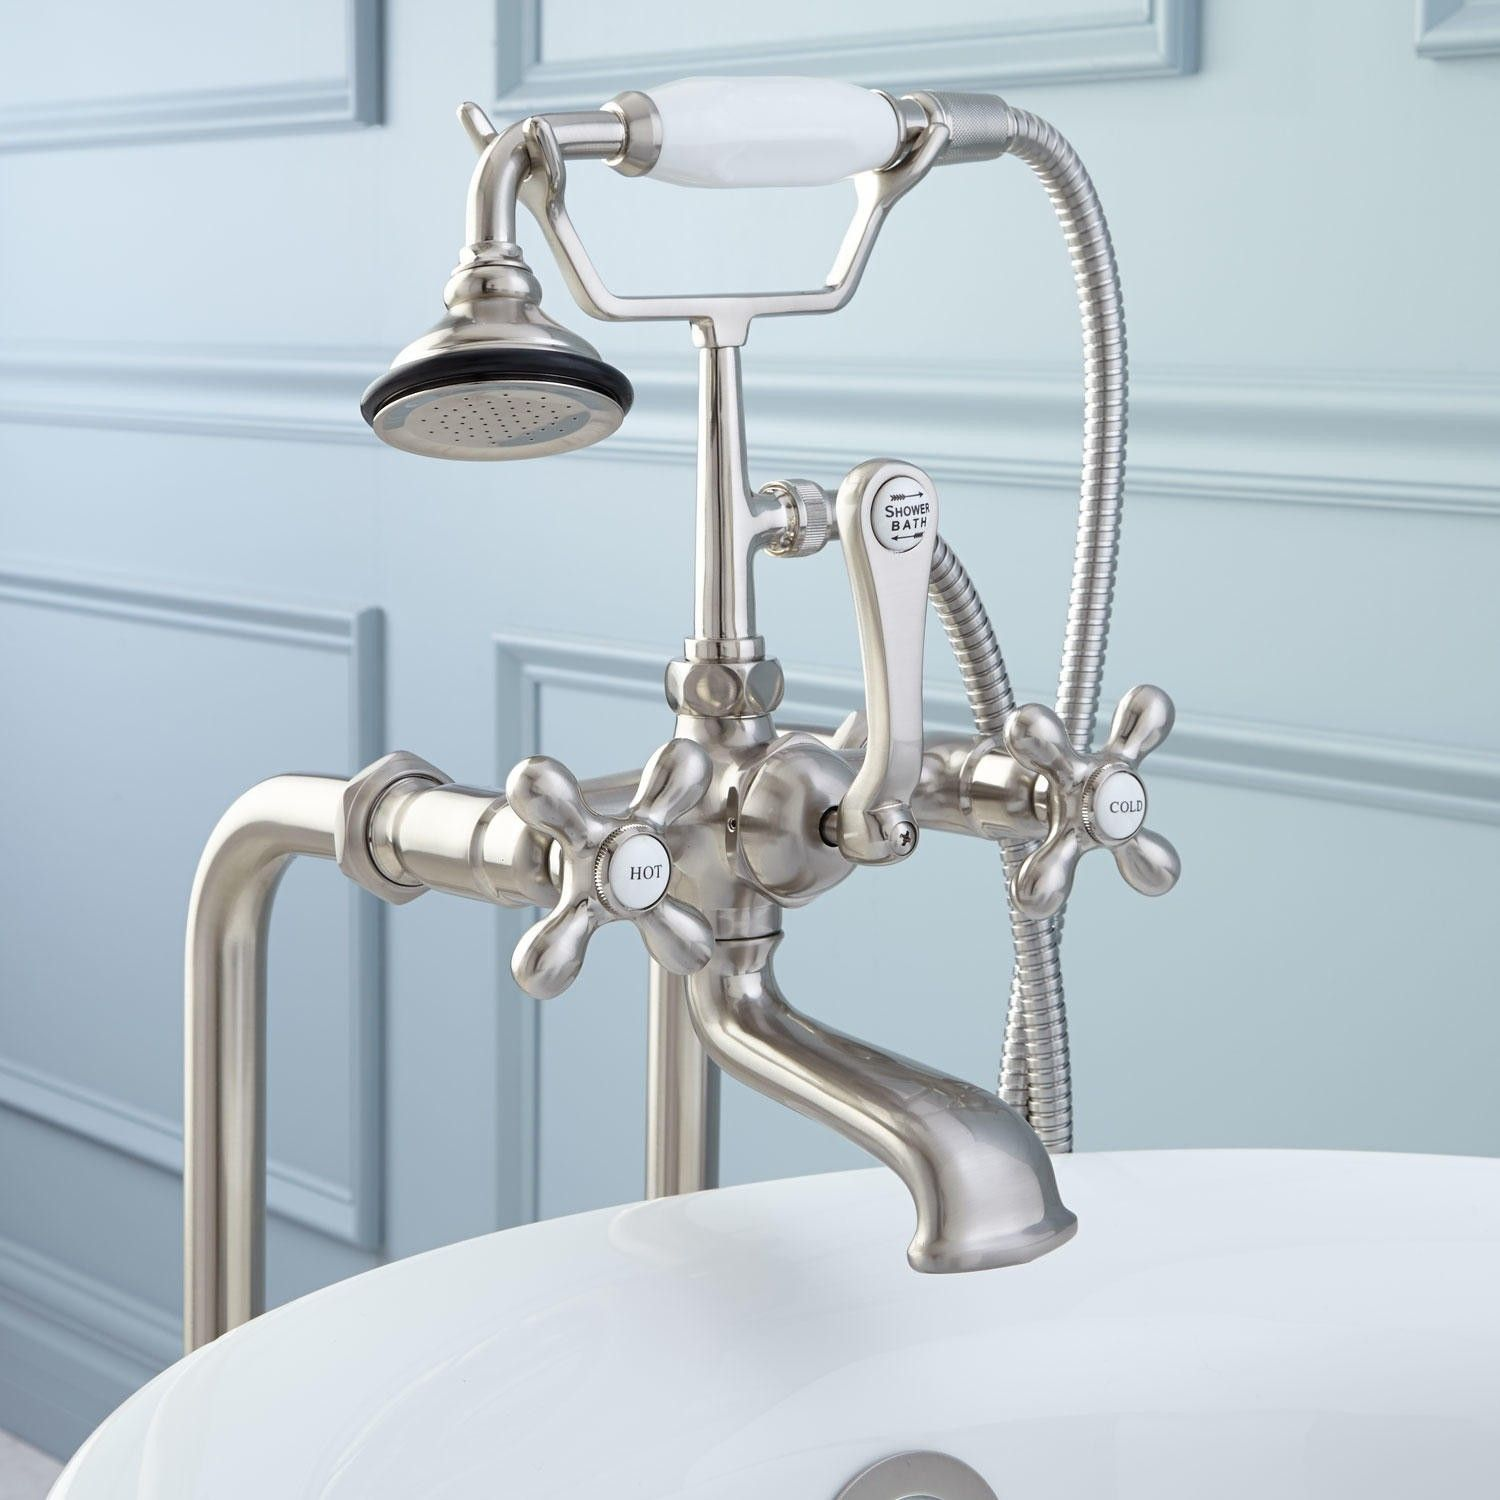 Freestanding English Telephone Tub Faucet, Supplies and Drain ...